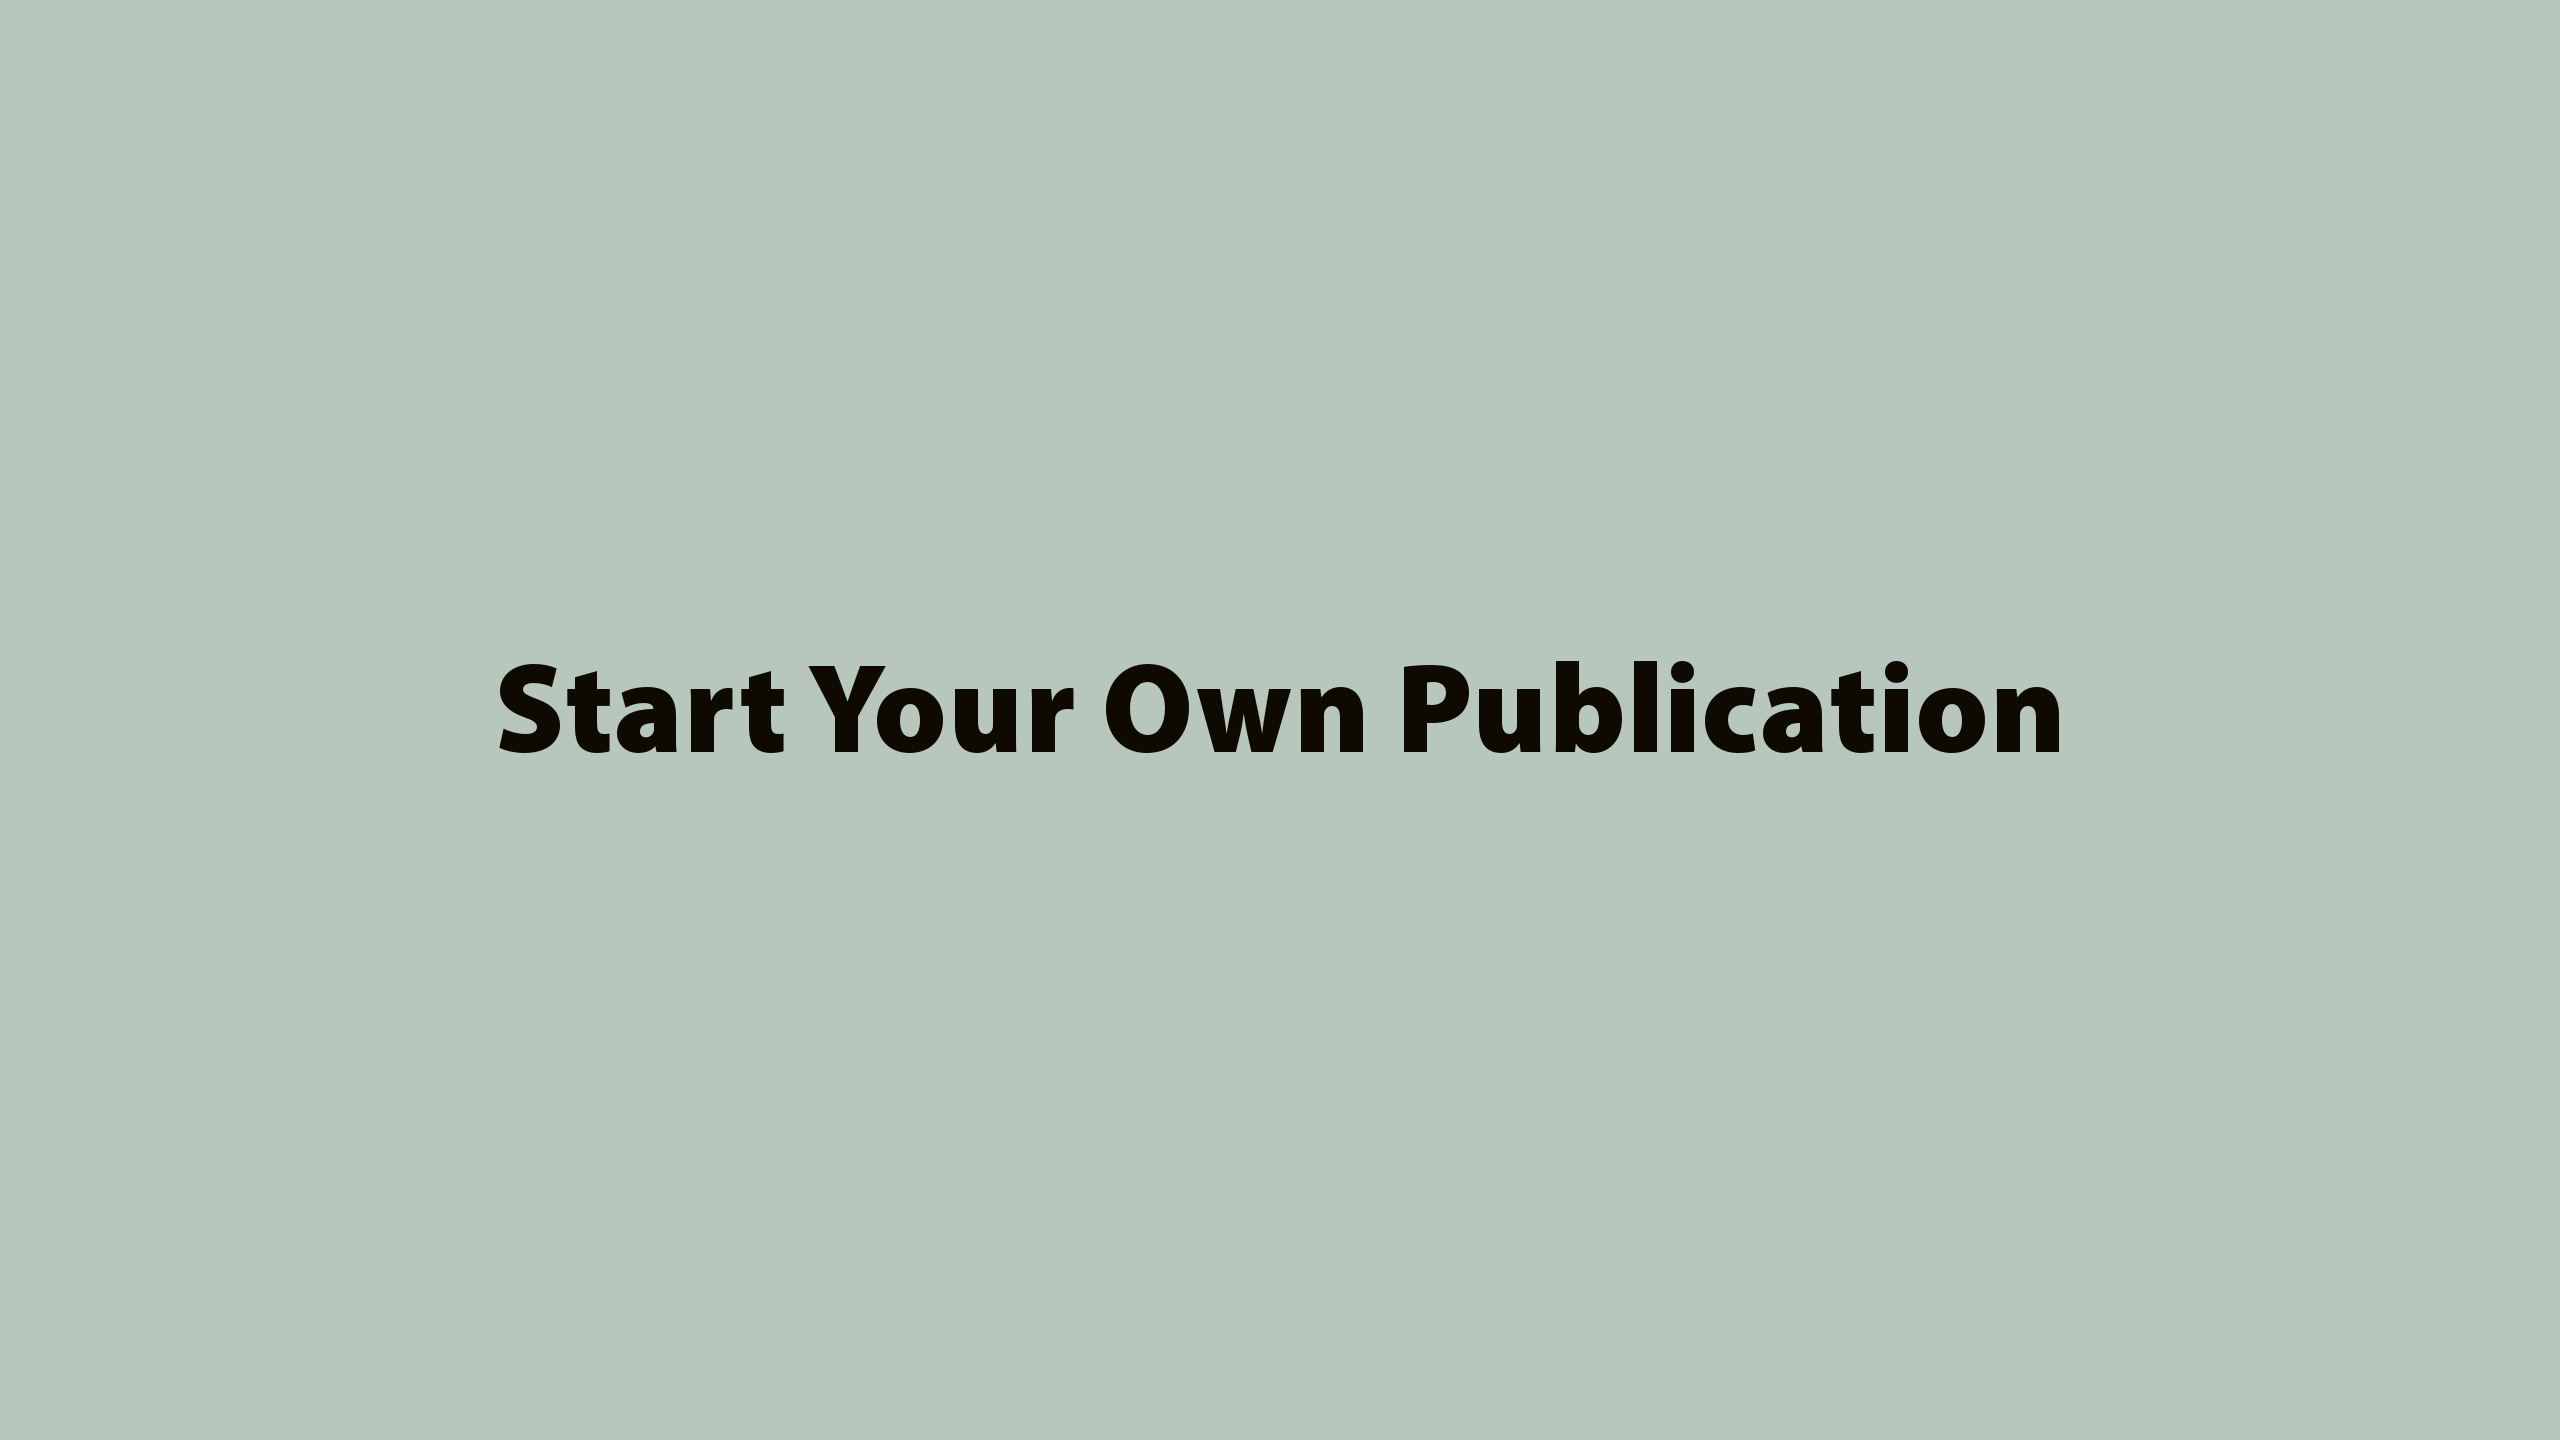 Start Your Own Publication